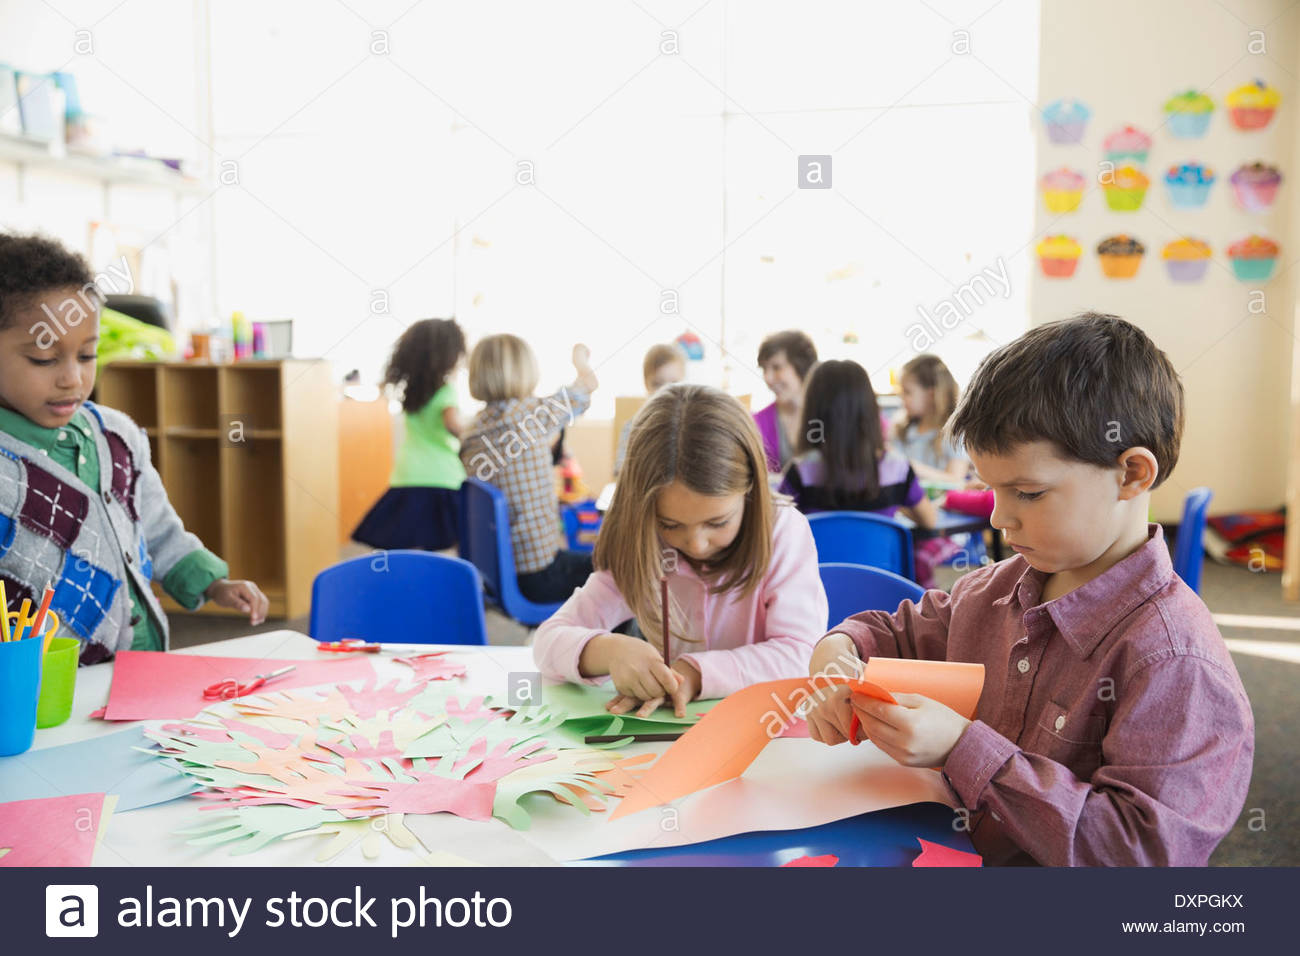 Elementary students tracing hands in class - Stock Image